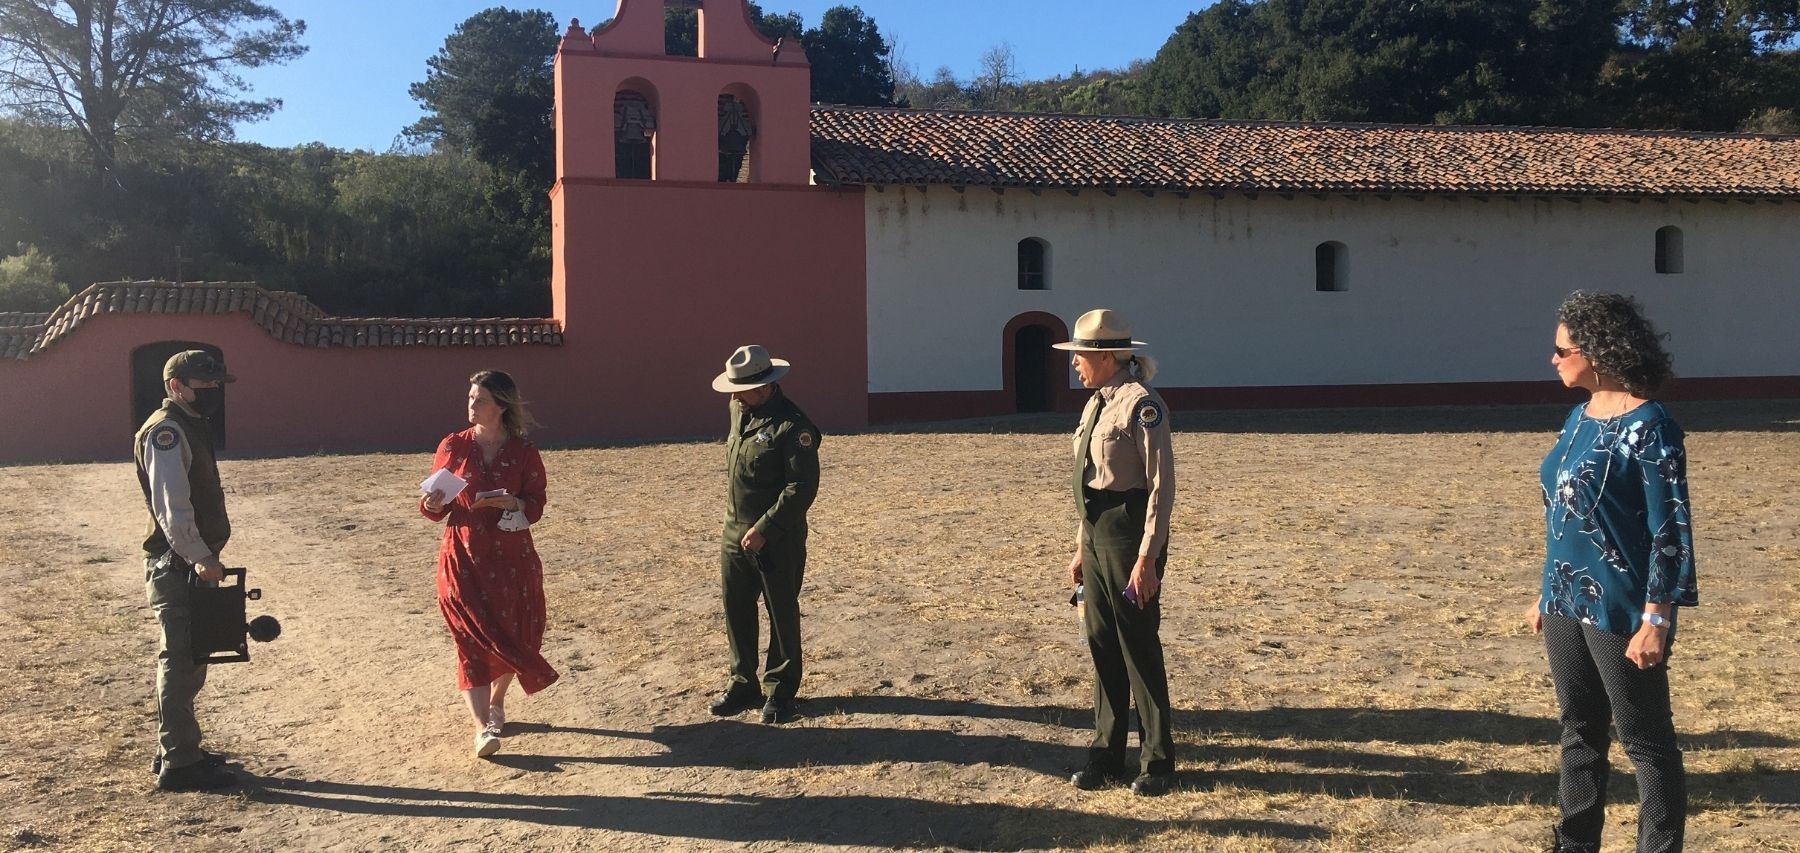 ParkSpeak-La-Purisima-Mission-State-Historic-Park